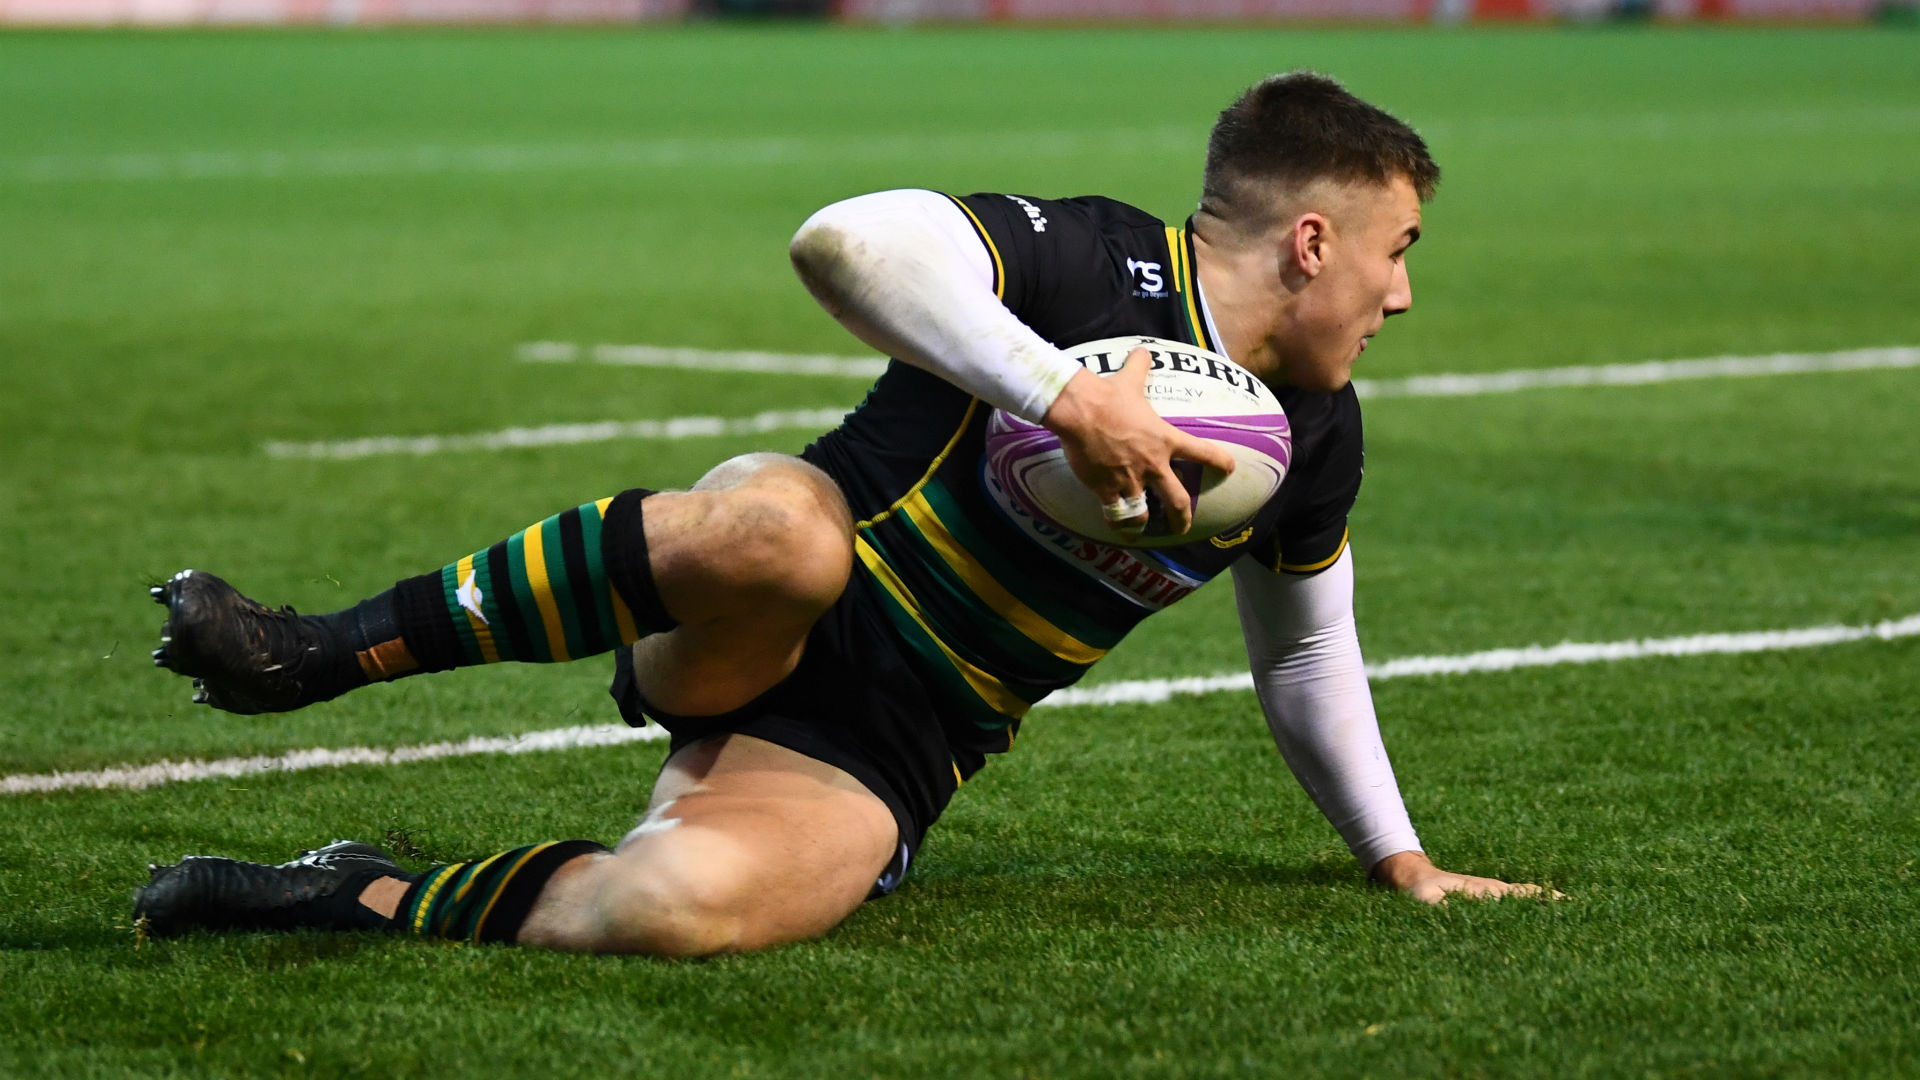 Saints show no mercy, score 111 in rout of Timisoara Saracens